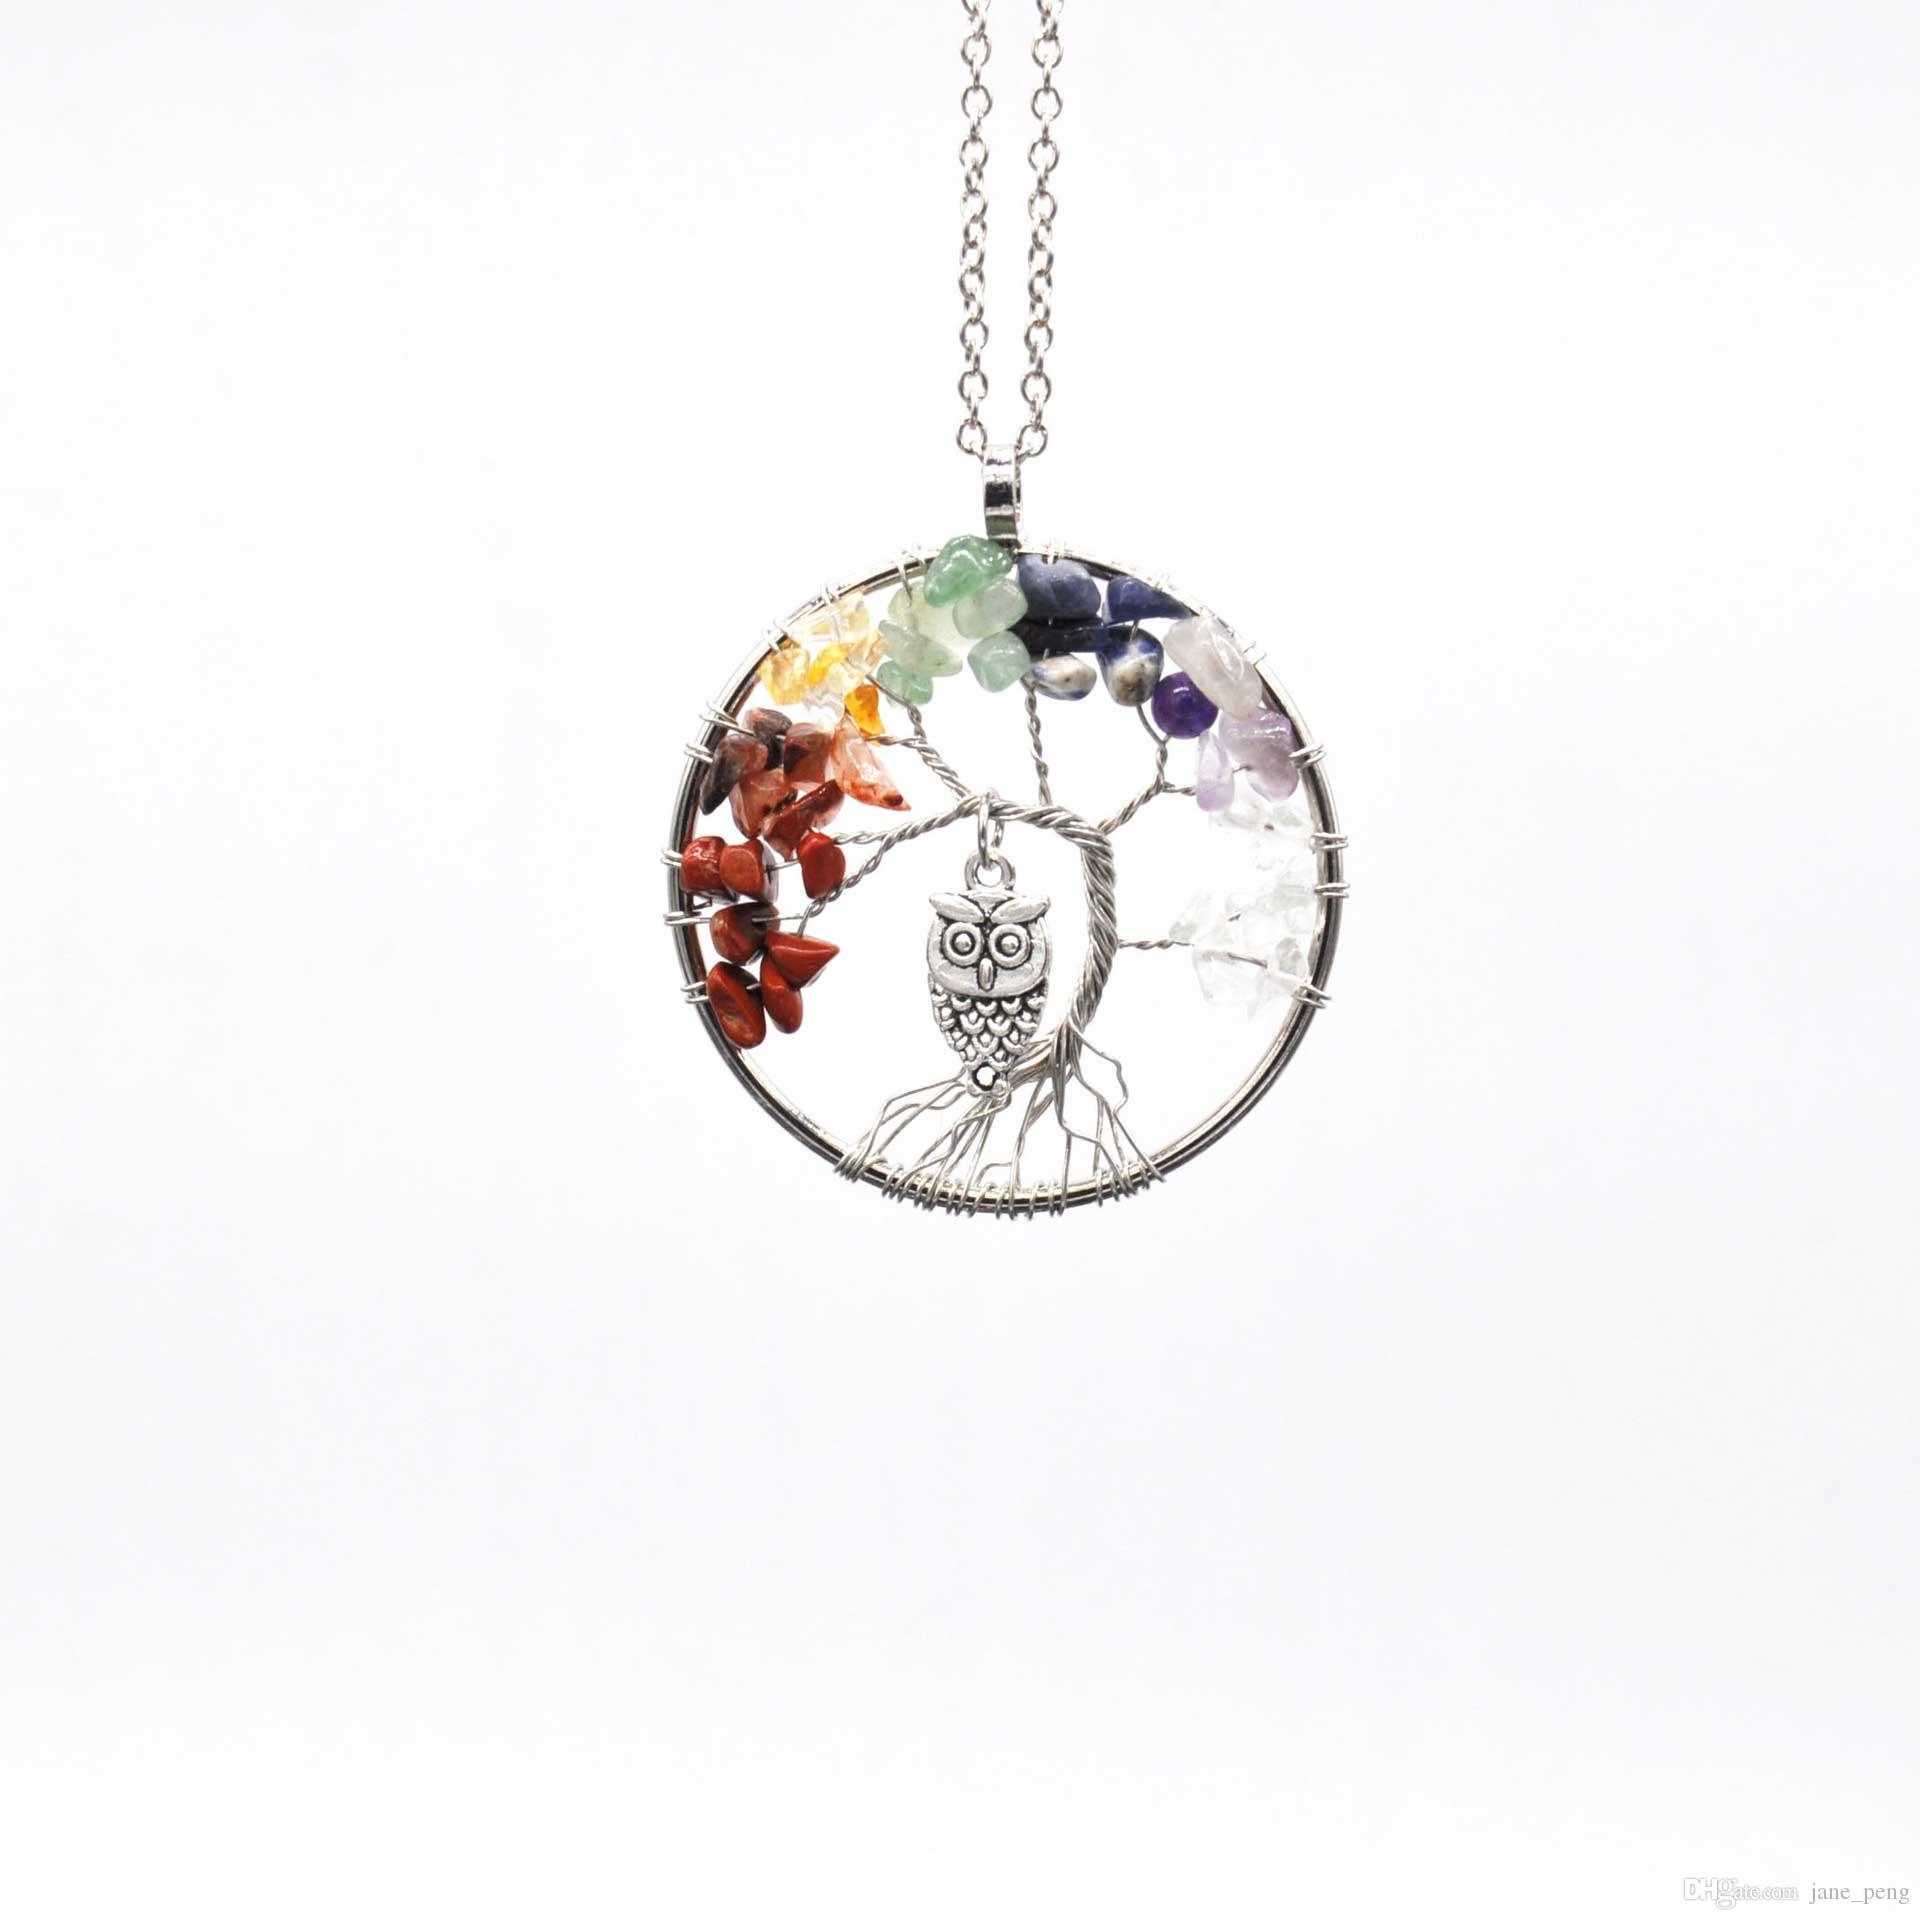 Owl Charms Rainbow 7 Chakra Tree Of Life Crystal Pendant Necklace For Women Hand made Natural Stone Quantz Beads Drops Fashion Jewelry